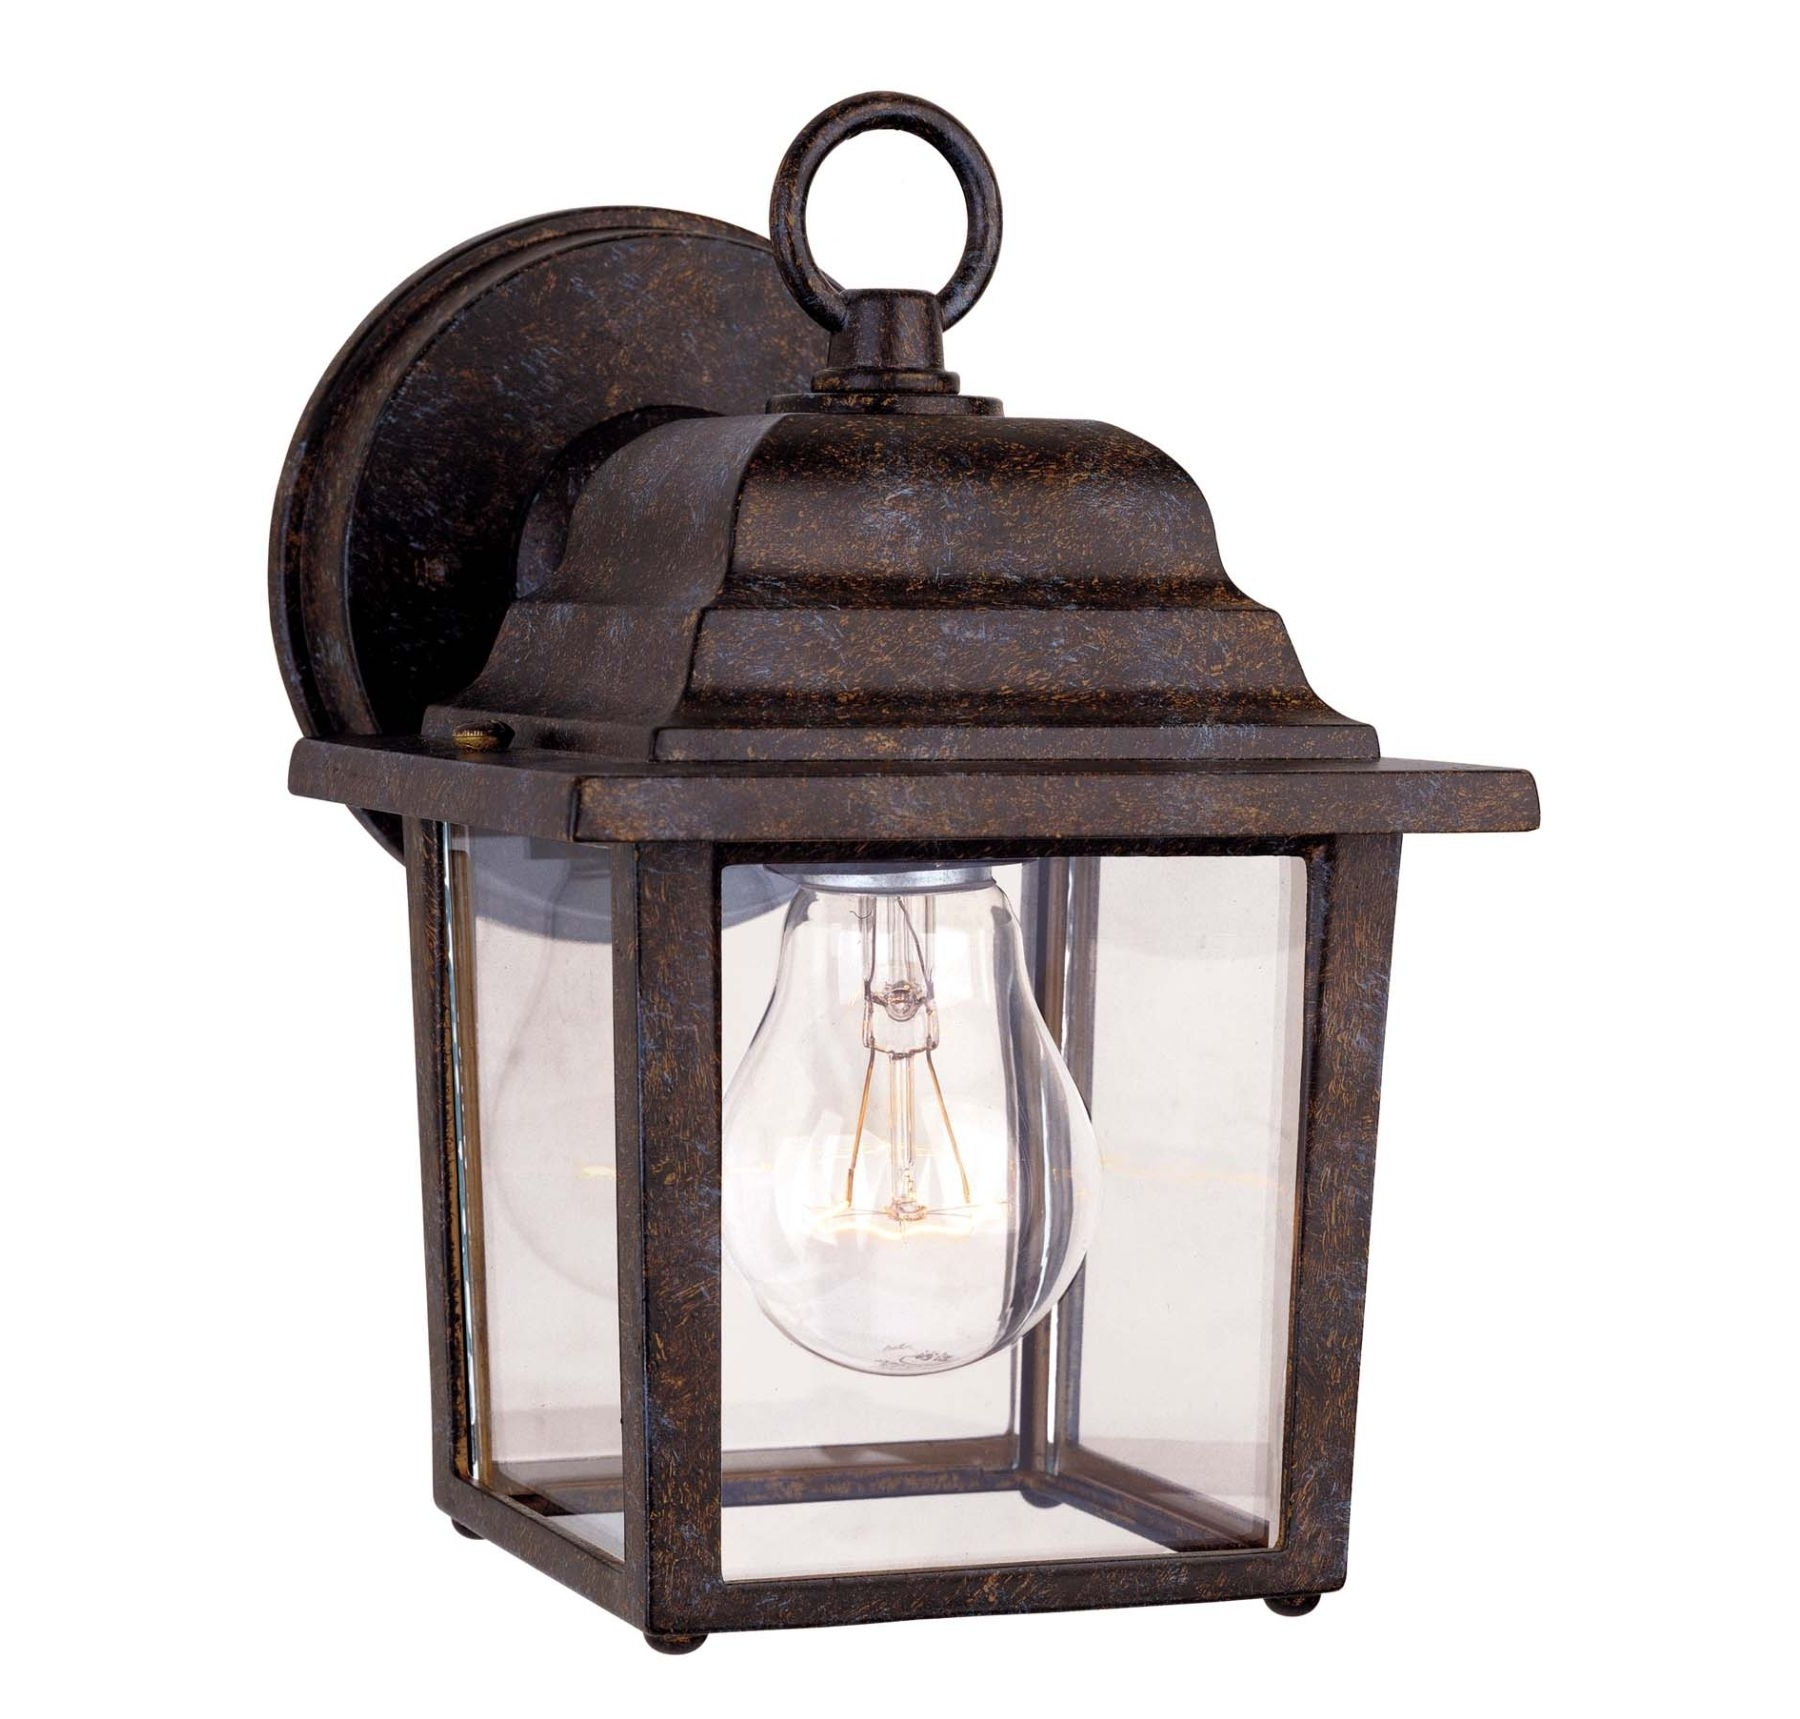 Best And Newest Interior Ideas: Classic Rustic Outdoor Wall Light For Home Depot Inside Rustic Outdoor Wall Lighting (View 3 of 20)